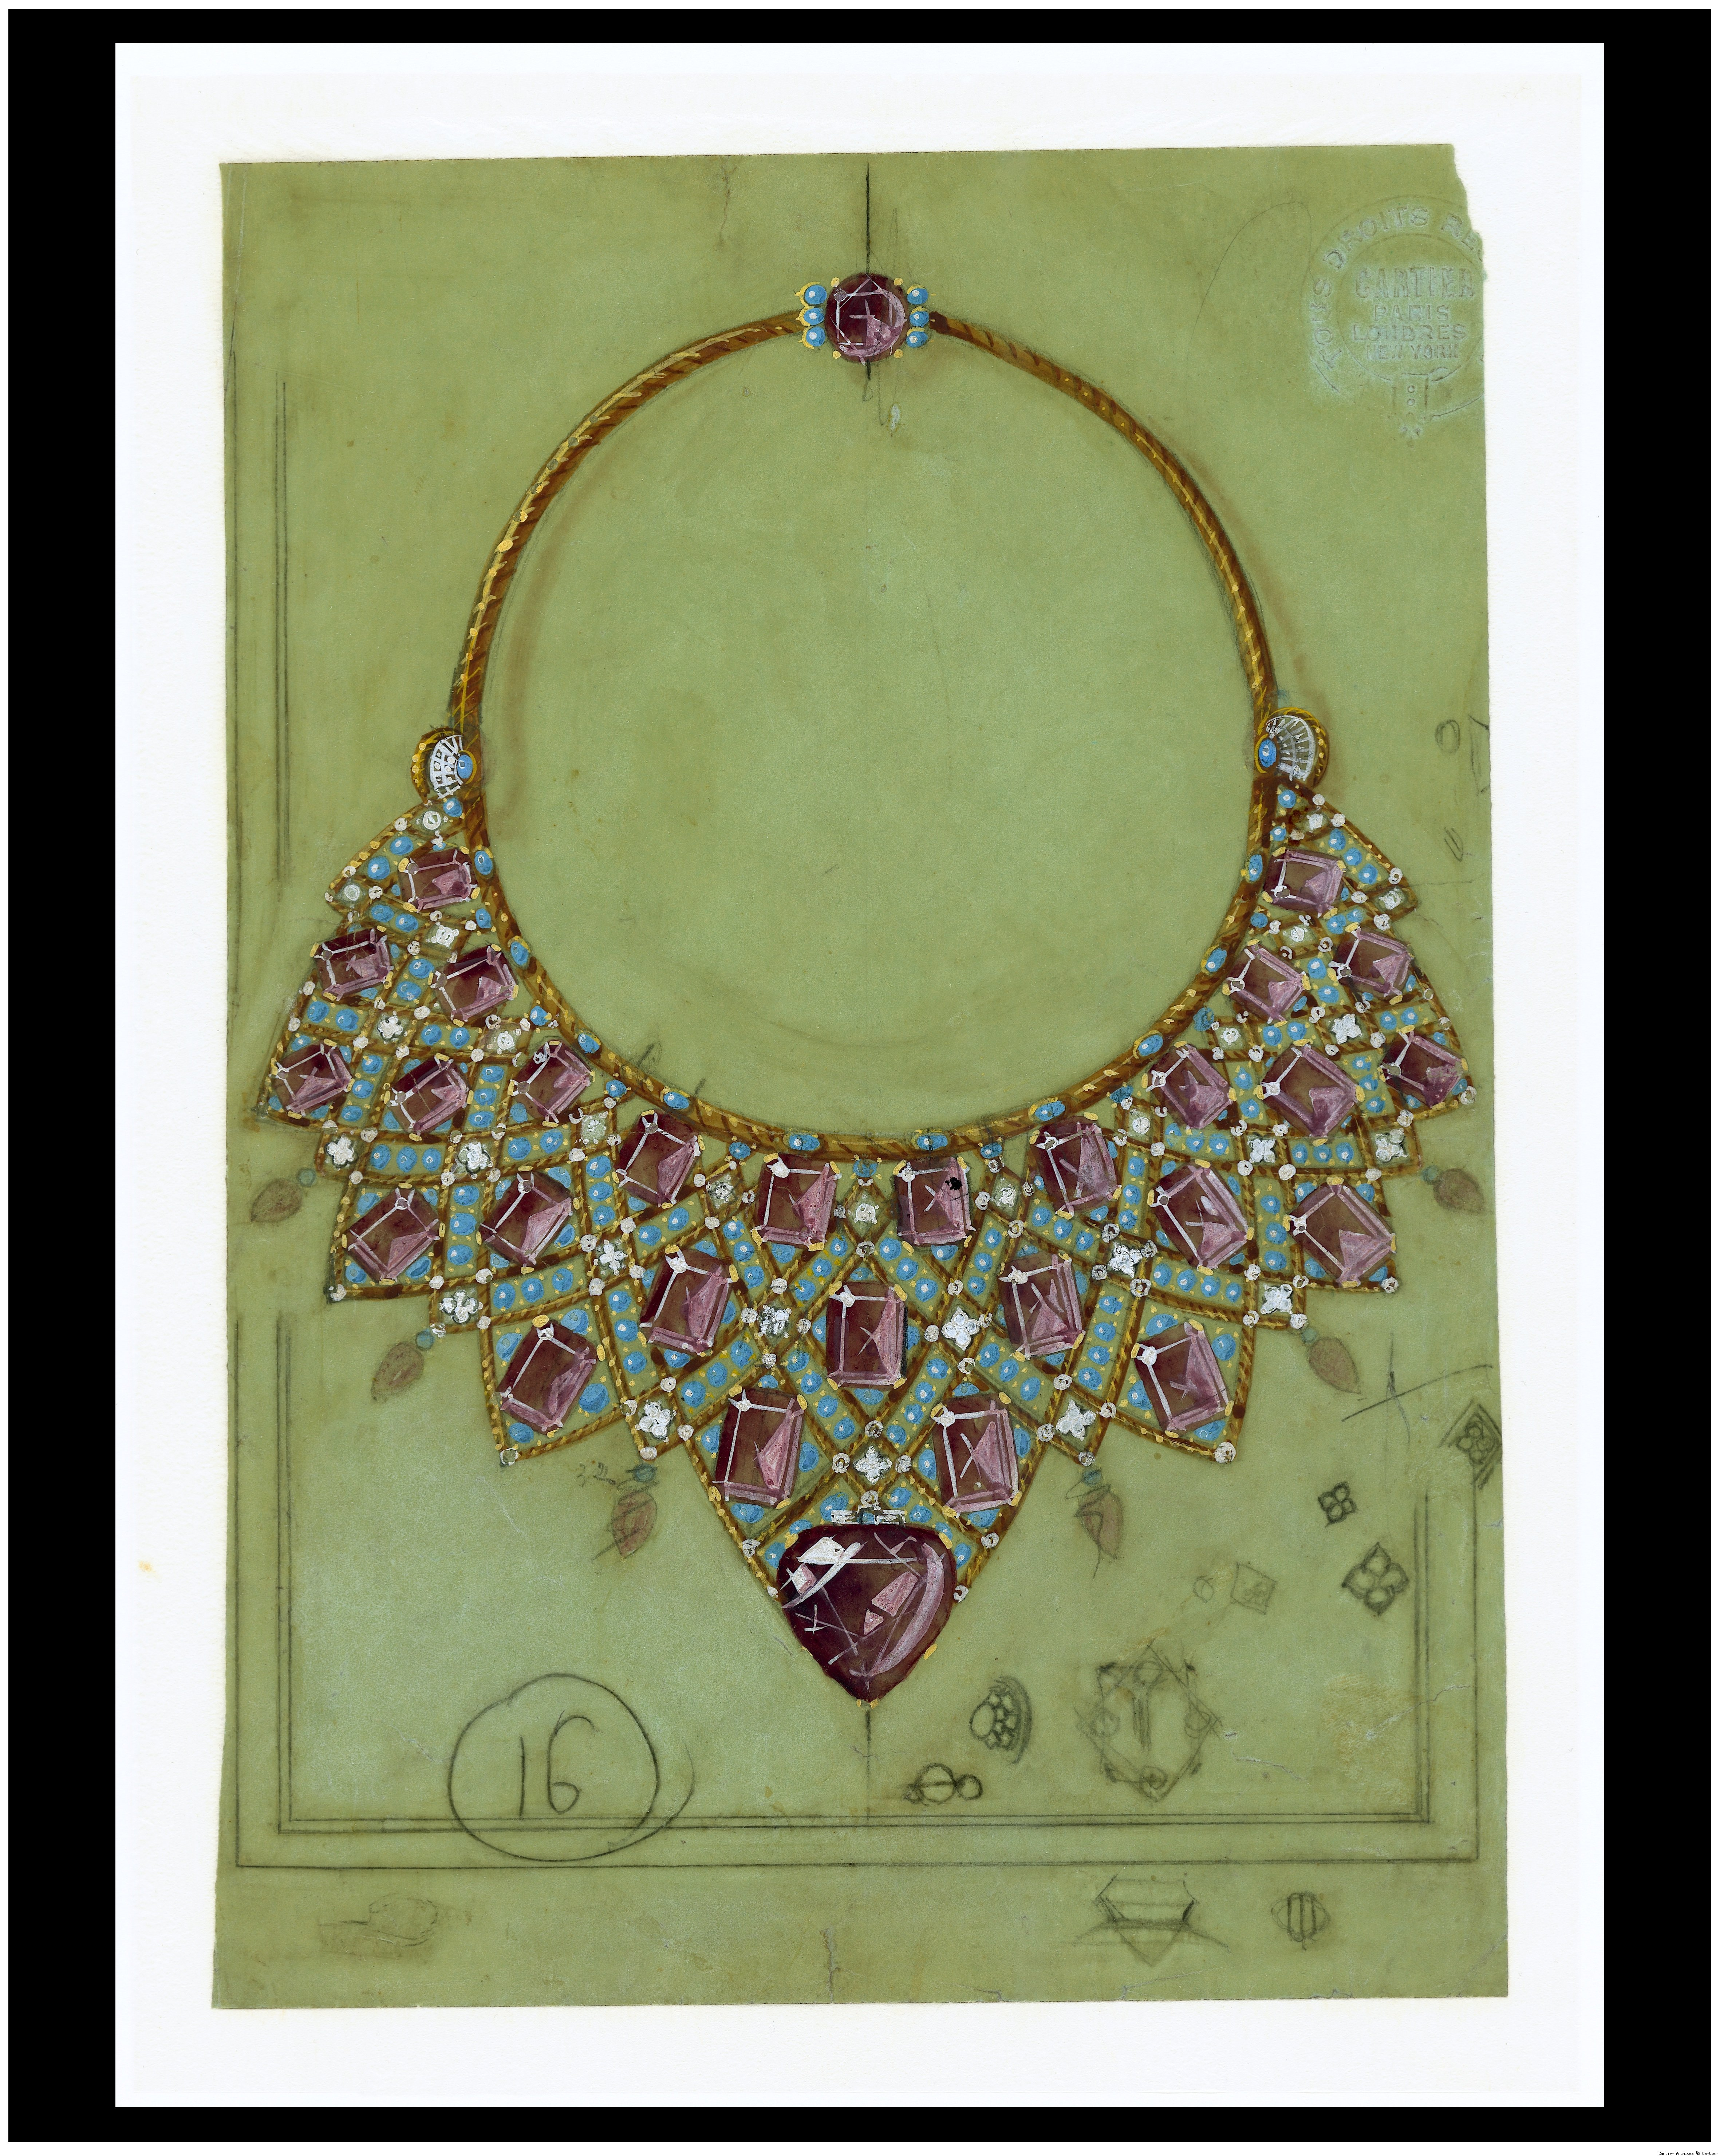 Cartier Bib Necklace